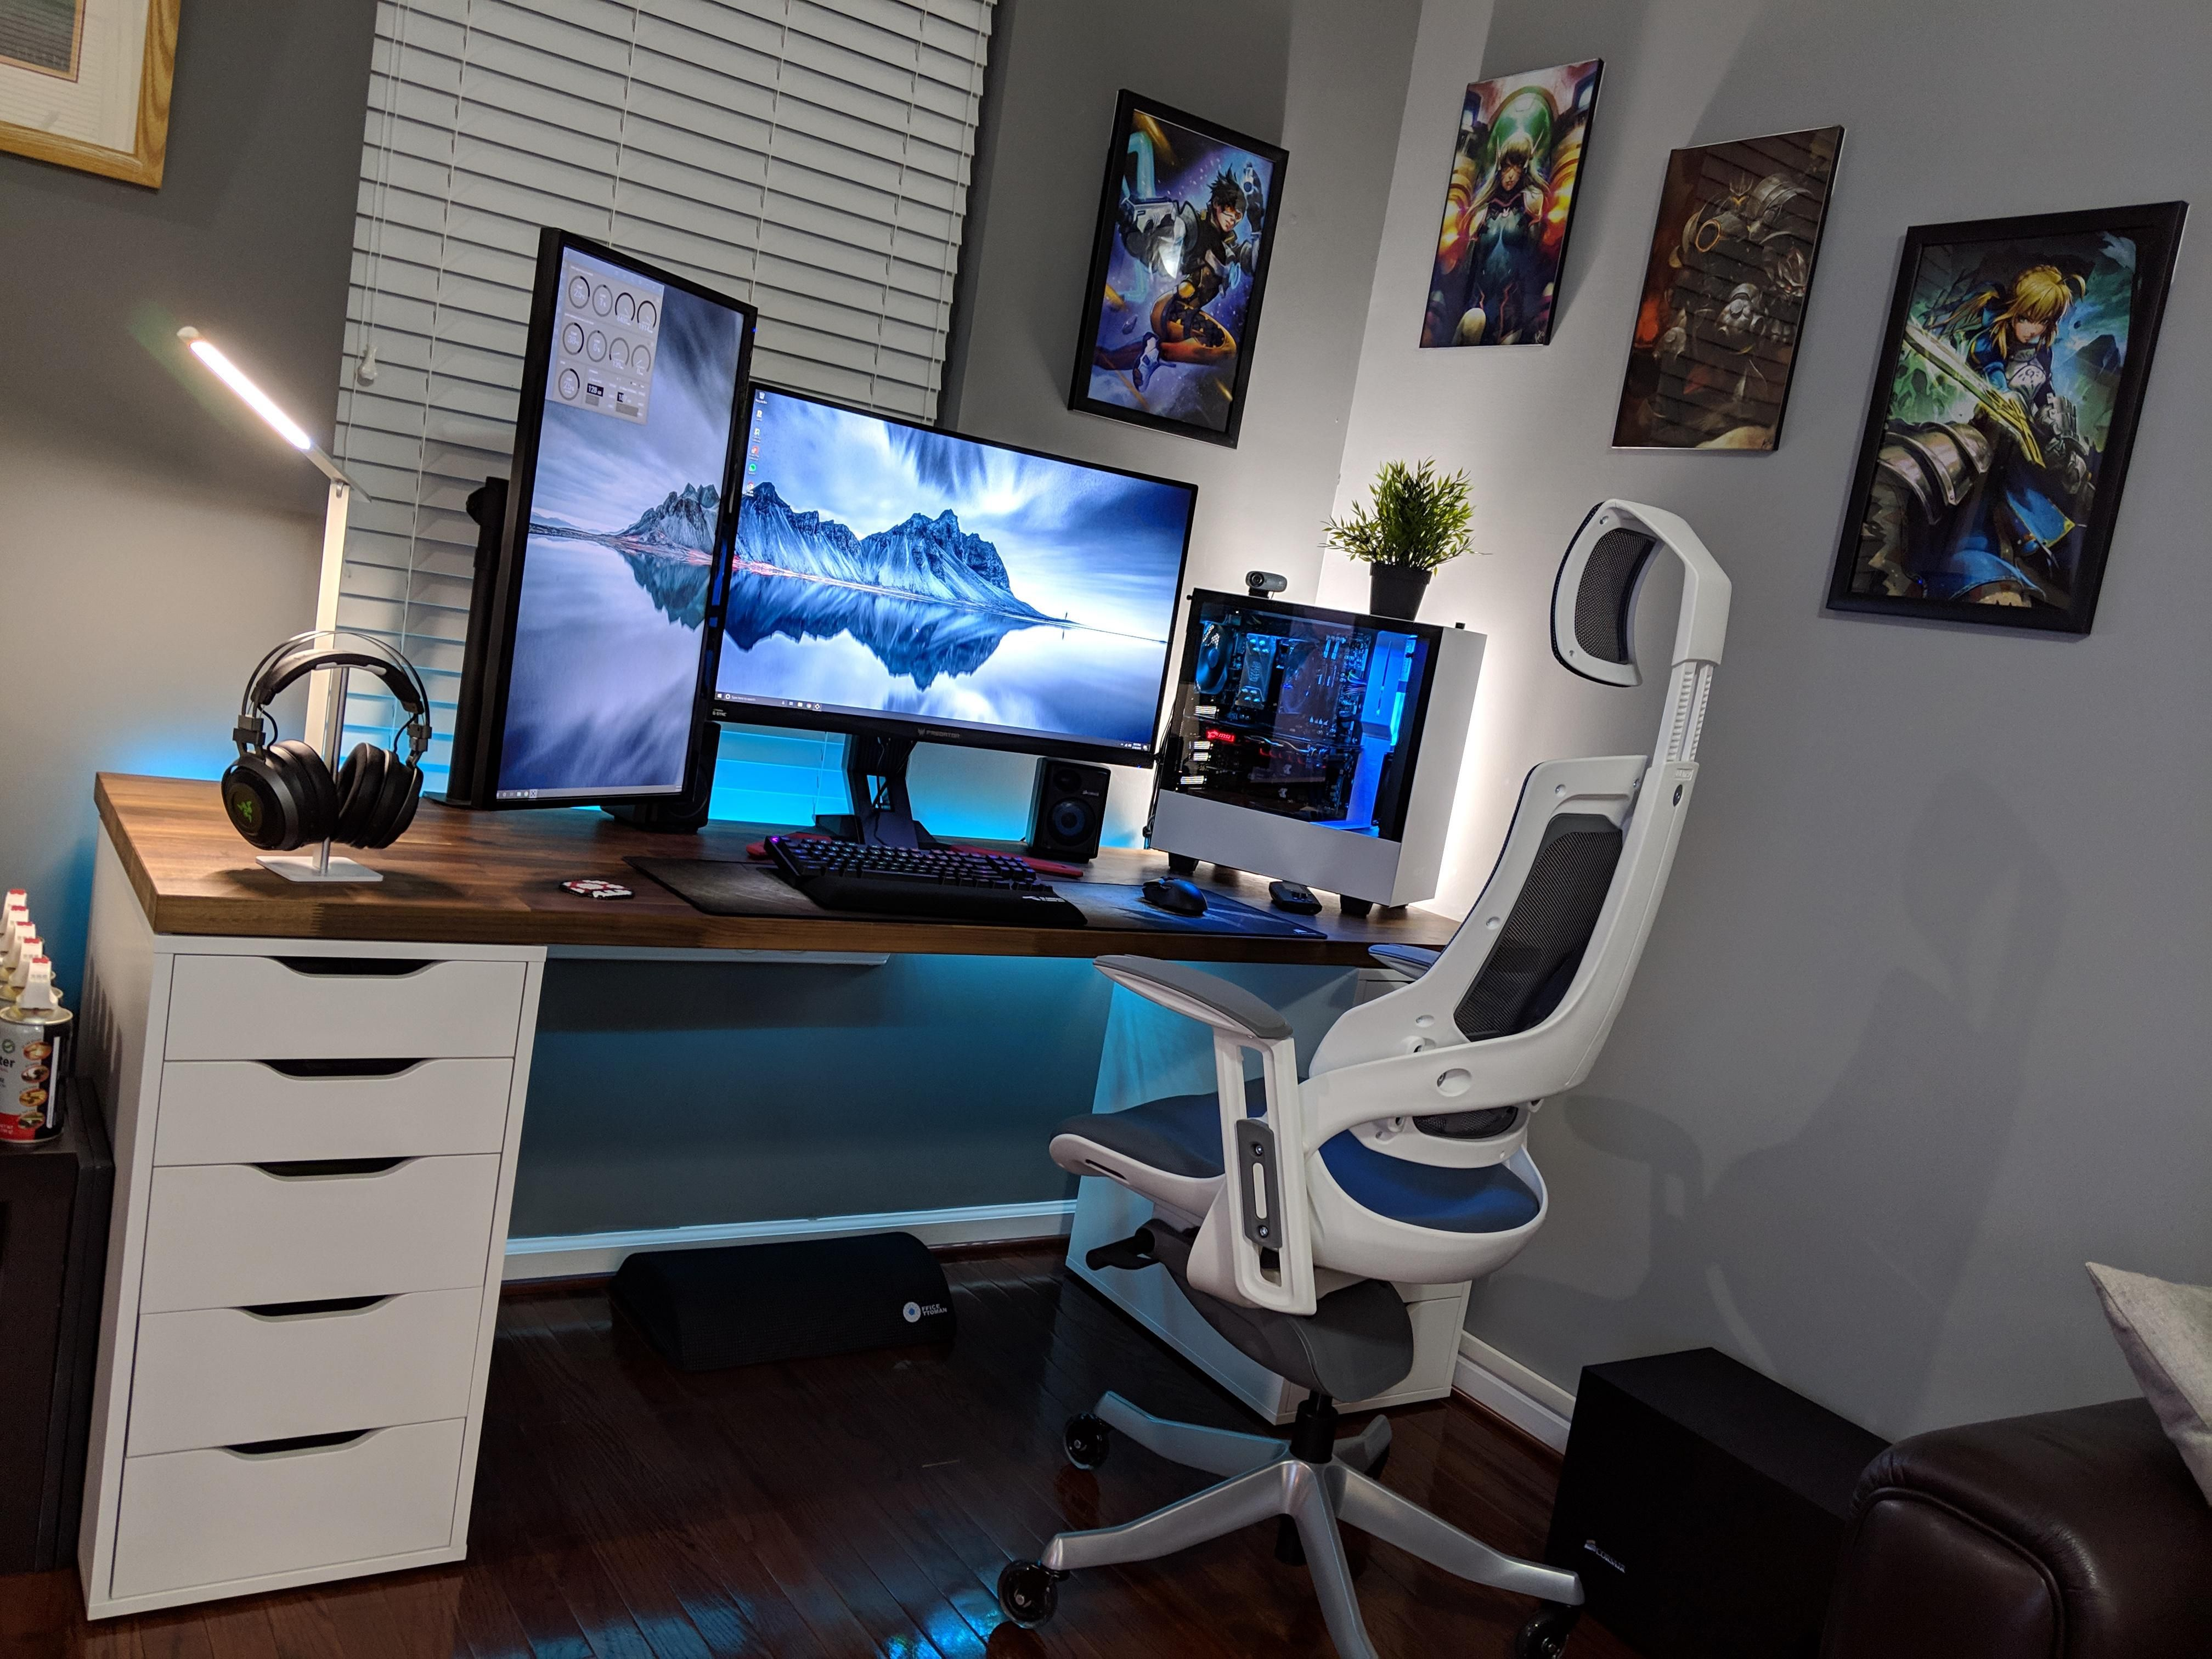 Work Play Chill Battlestations I Love The Blue Hues In The